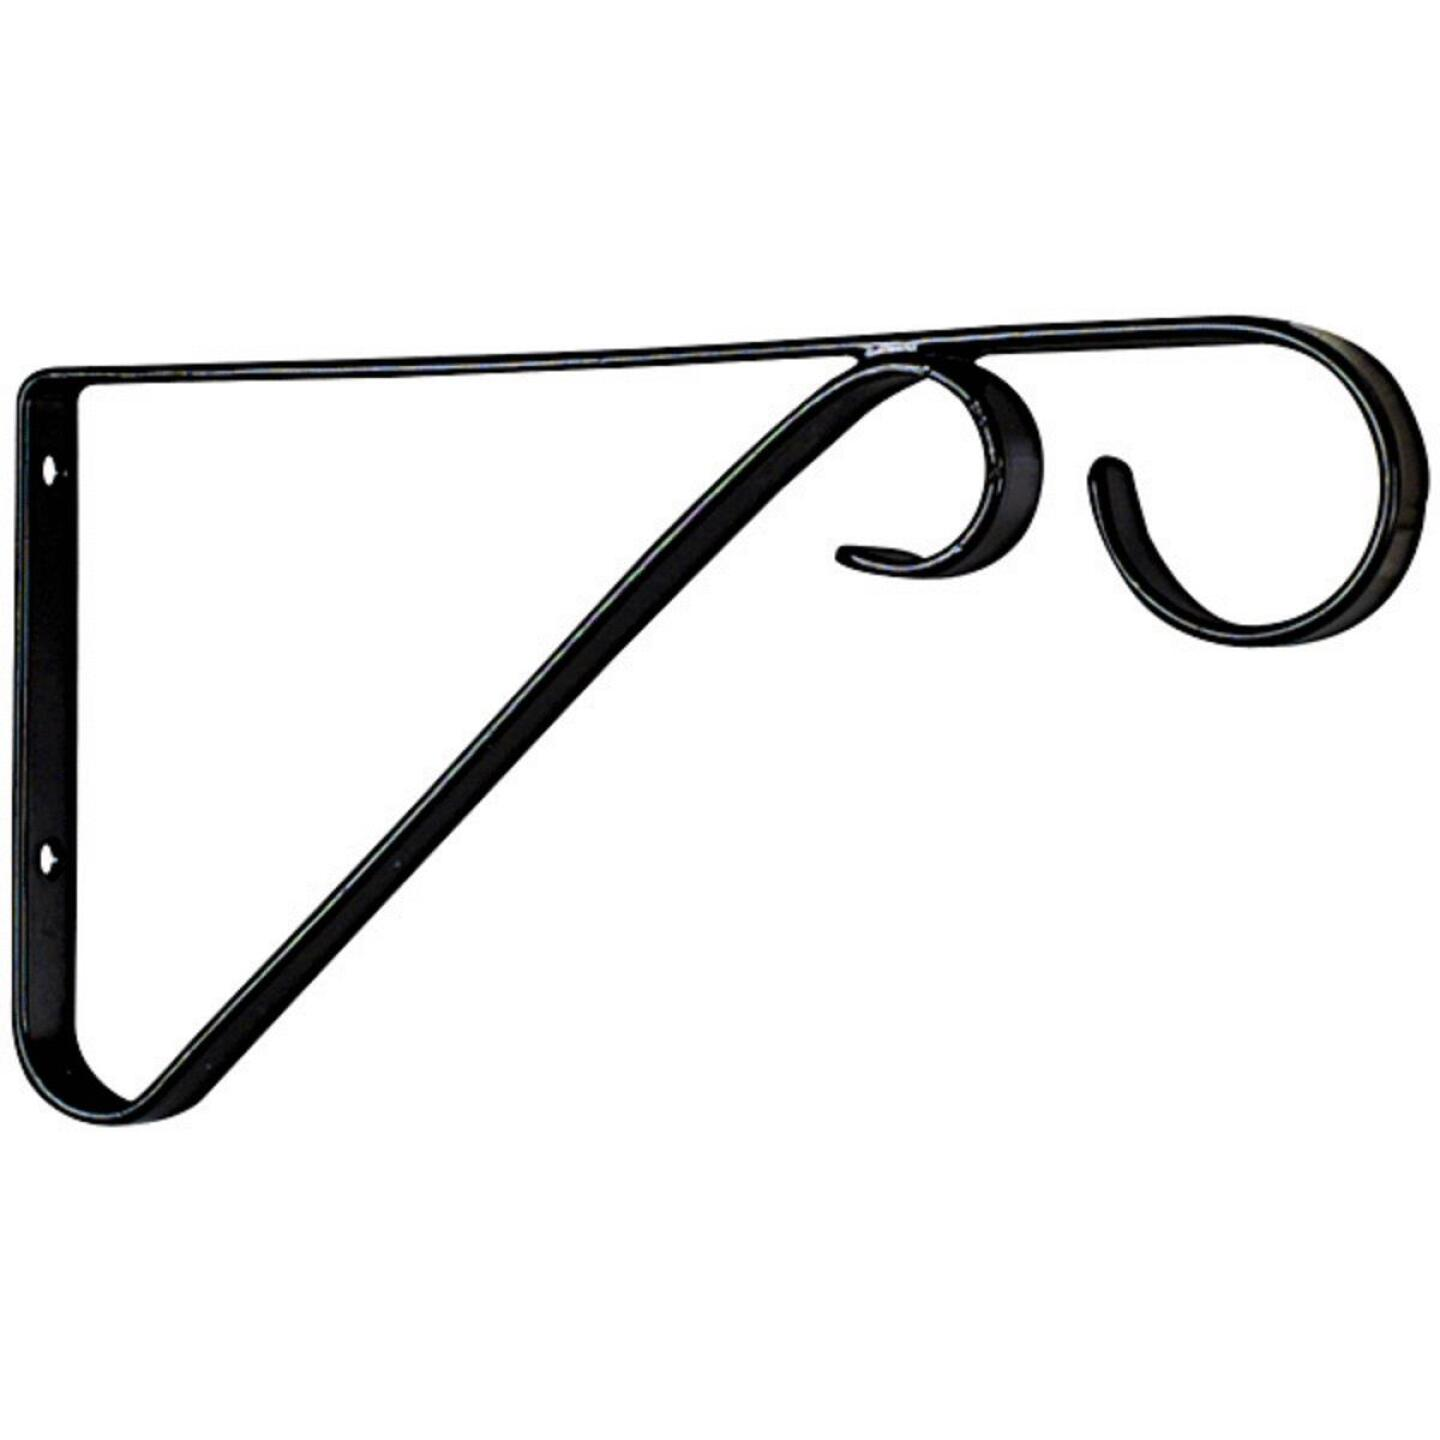 National 6 In. Black Steel Hanging Plant Bracket Image 3